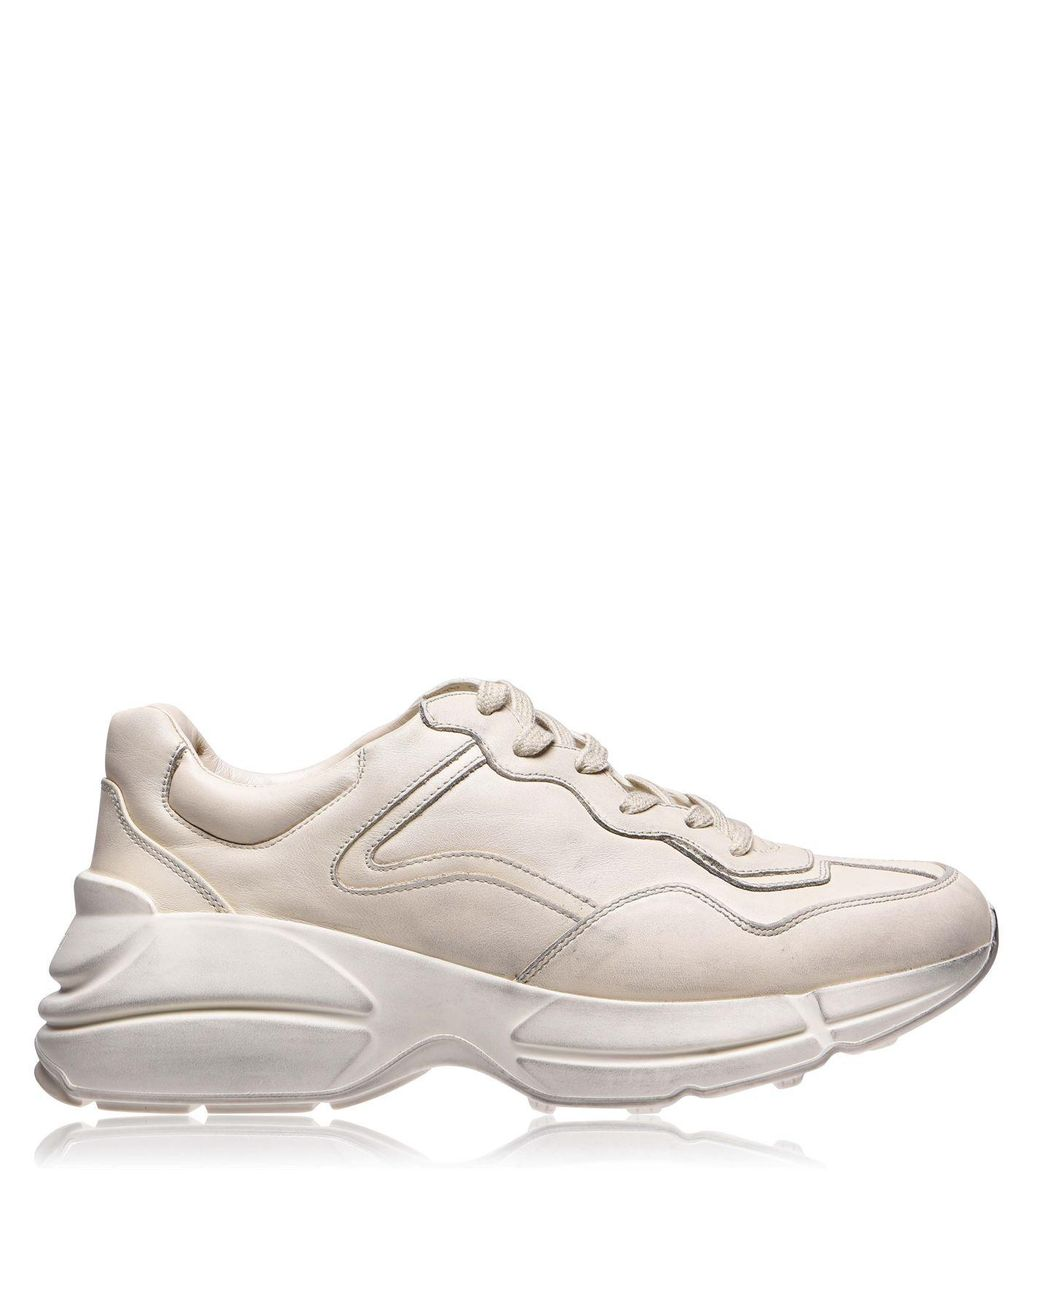 Gucci Rhyton Plain Runners in White for